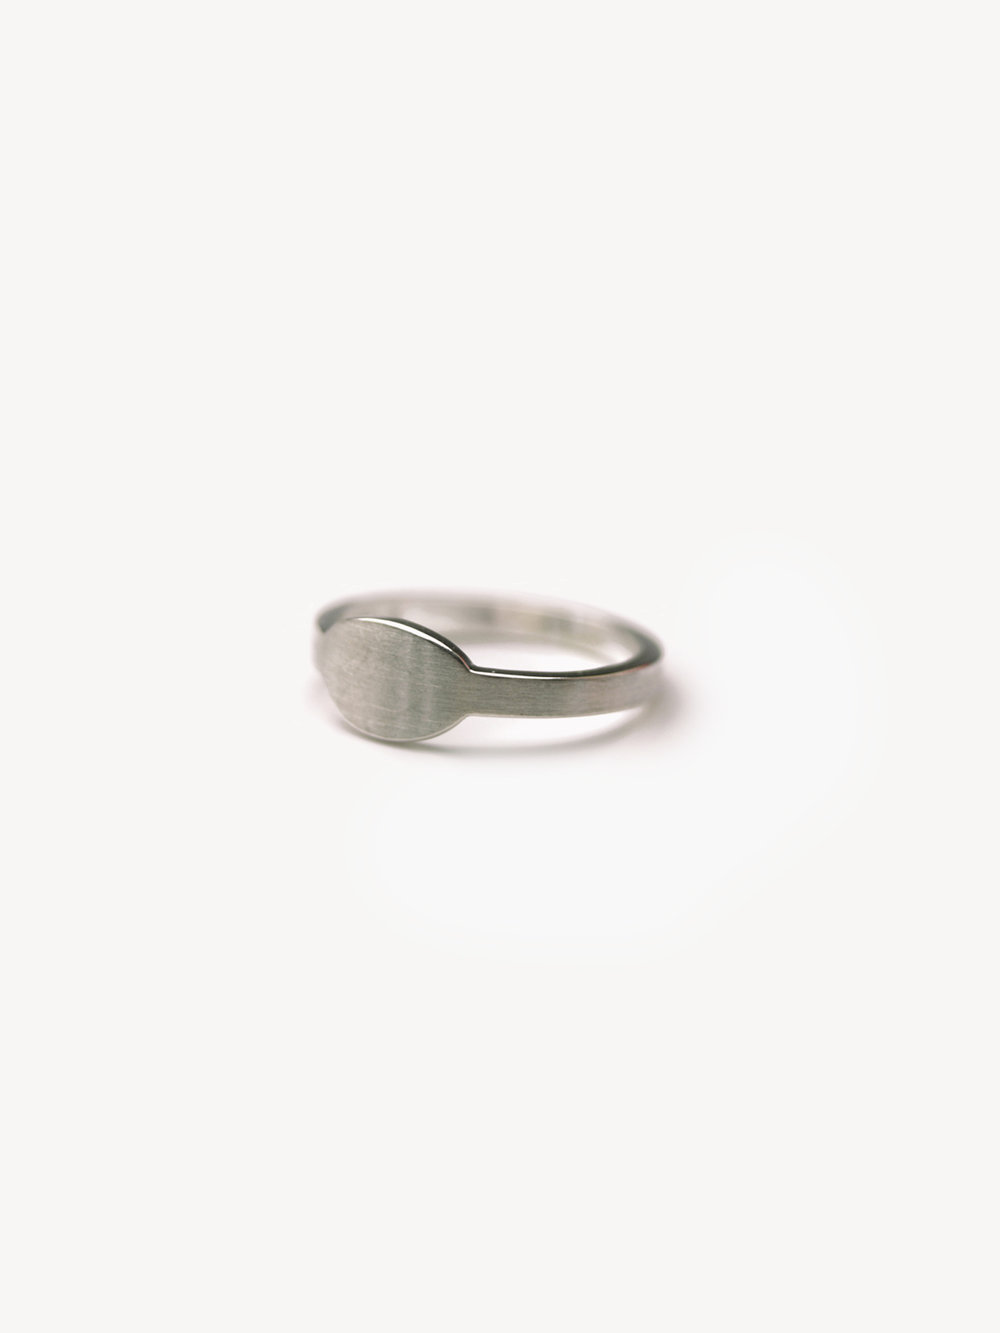 Siegelring Anda, queroval klein in 925 Silber  Signet ring Anda, horizontal oval small in silver